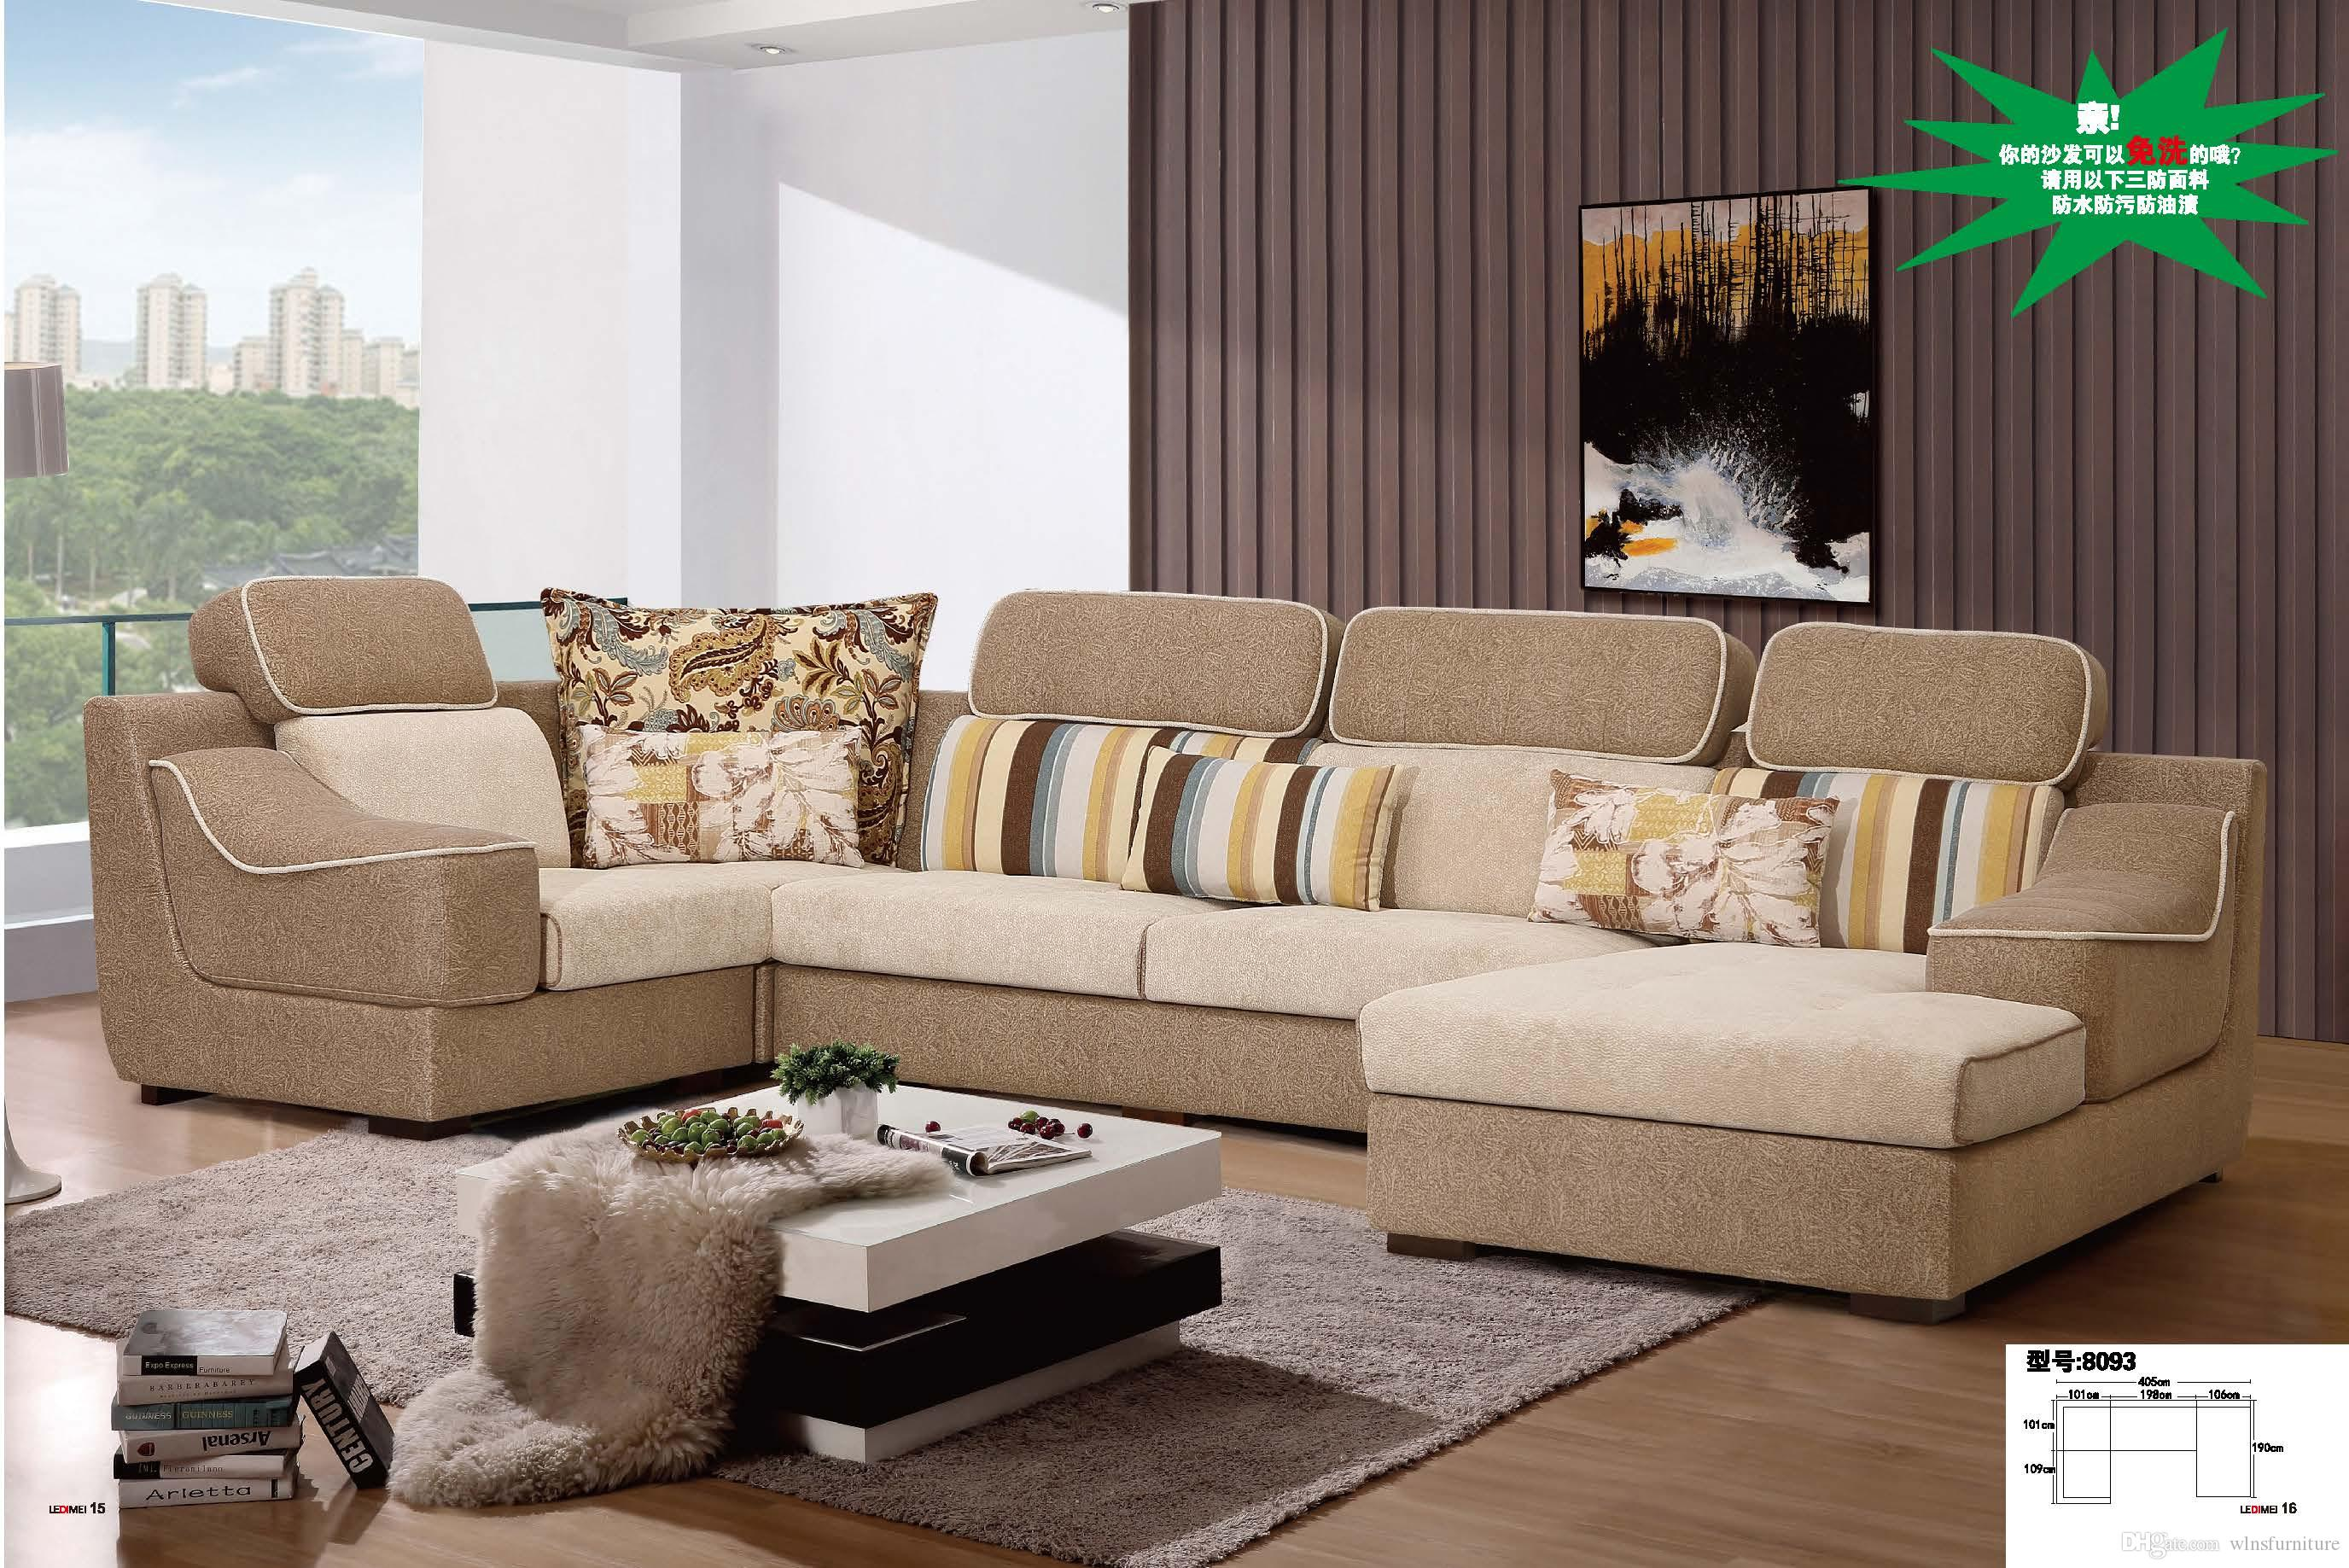 U Shape Sectional Anti Bacterial Fabric Sofa Comfortable Soft Fabric Sofa  Set Living Room Furniture Living Room Sofa Fabric Sofa U Shape Sofa Online  With ...